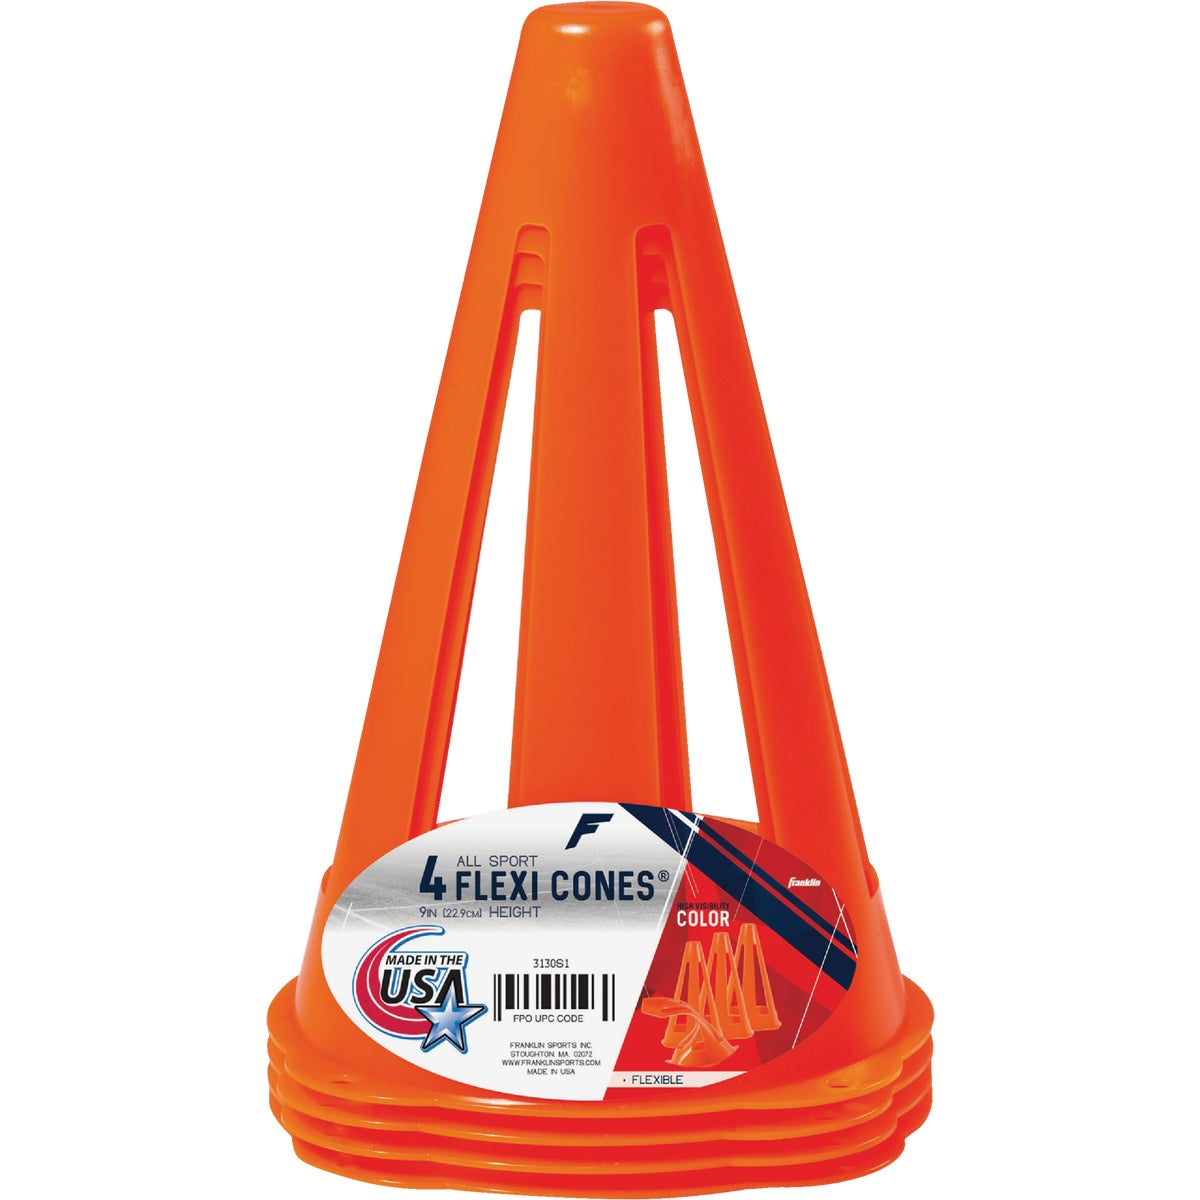 "4PK 9"" SAFETY CONES - 3130S1 by Franklin Sports"